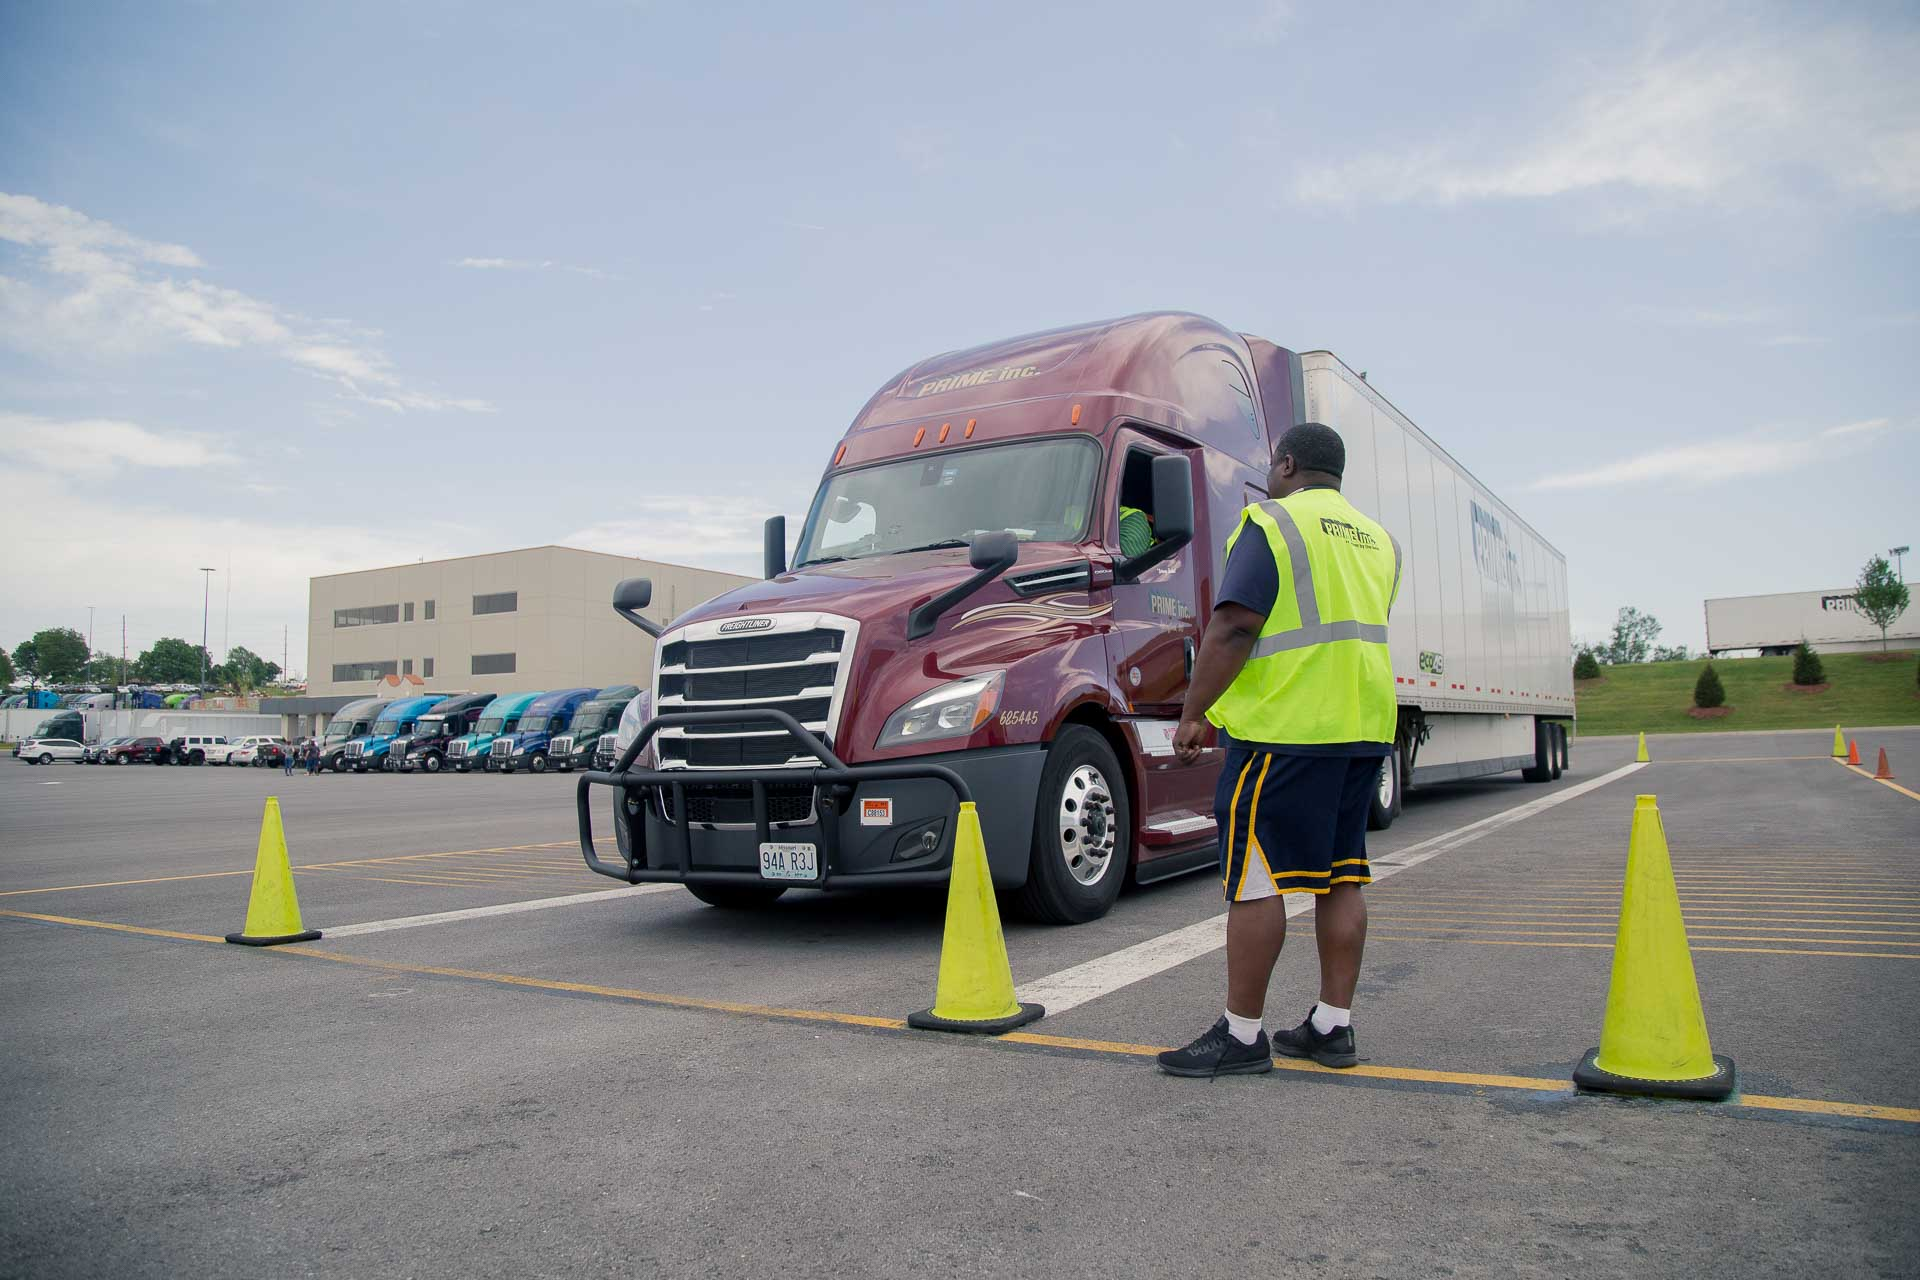 A Prime driving instructor observing a student driver in a red semi-truck driving in a parking lot.